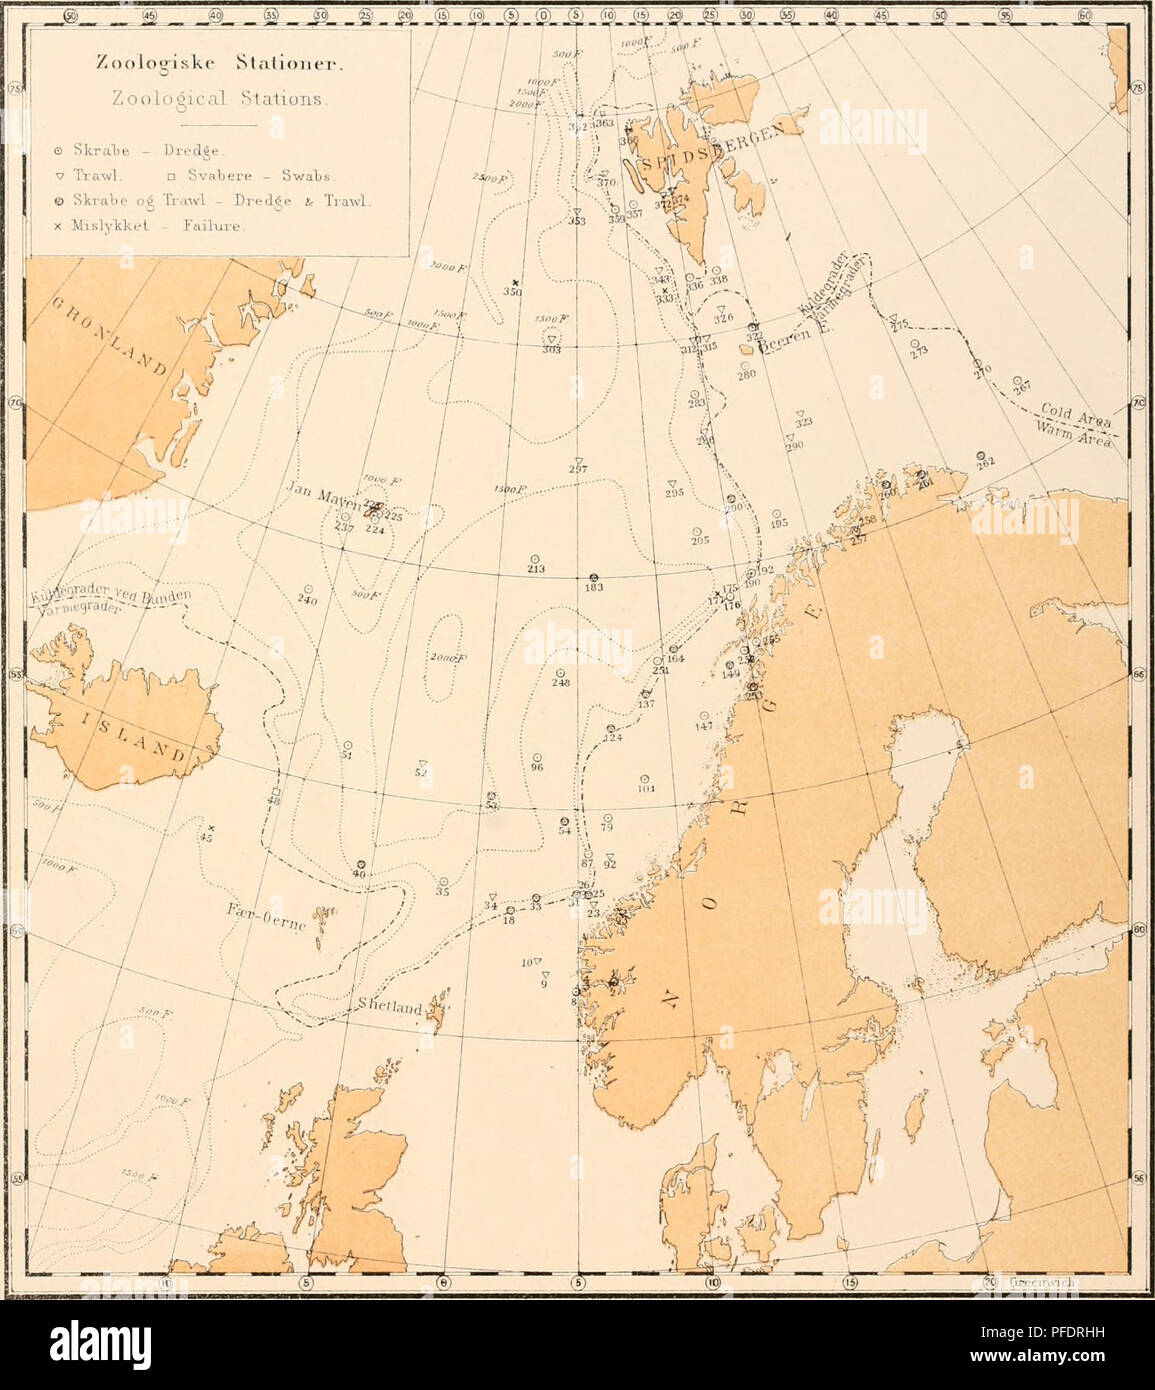 . Den Norske Nordhavs-expedition, 1876-1878. Scientific expeditions; Marine animals -- Norwegian Sea; Marine animals -- Arctic regions; Norwegian Sea. Norske Mordliavs-UxpeditiaB.. fim /input, Øttmaatiiiip hOuAtisUtll. Krftliiuiia,. Please note that these images are extracted from scanned page images that may have been digitally enhanced for readability - coloration and appearance of these illustrations may not perfectly resemble the original work.. Mohn, Henrik, b. 1835; Sars, G. O. (Georg Ossian), 1837-1927; Friele, Herman, 1838-; Bonnevie, Kristine. Christiania, Grøndahl & søns bogtrykk - Stock Image